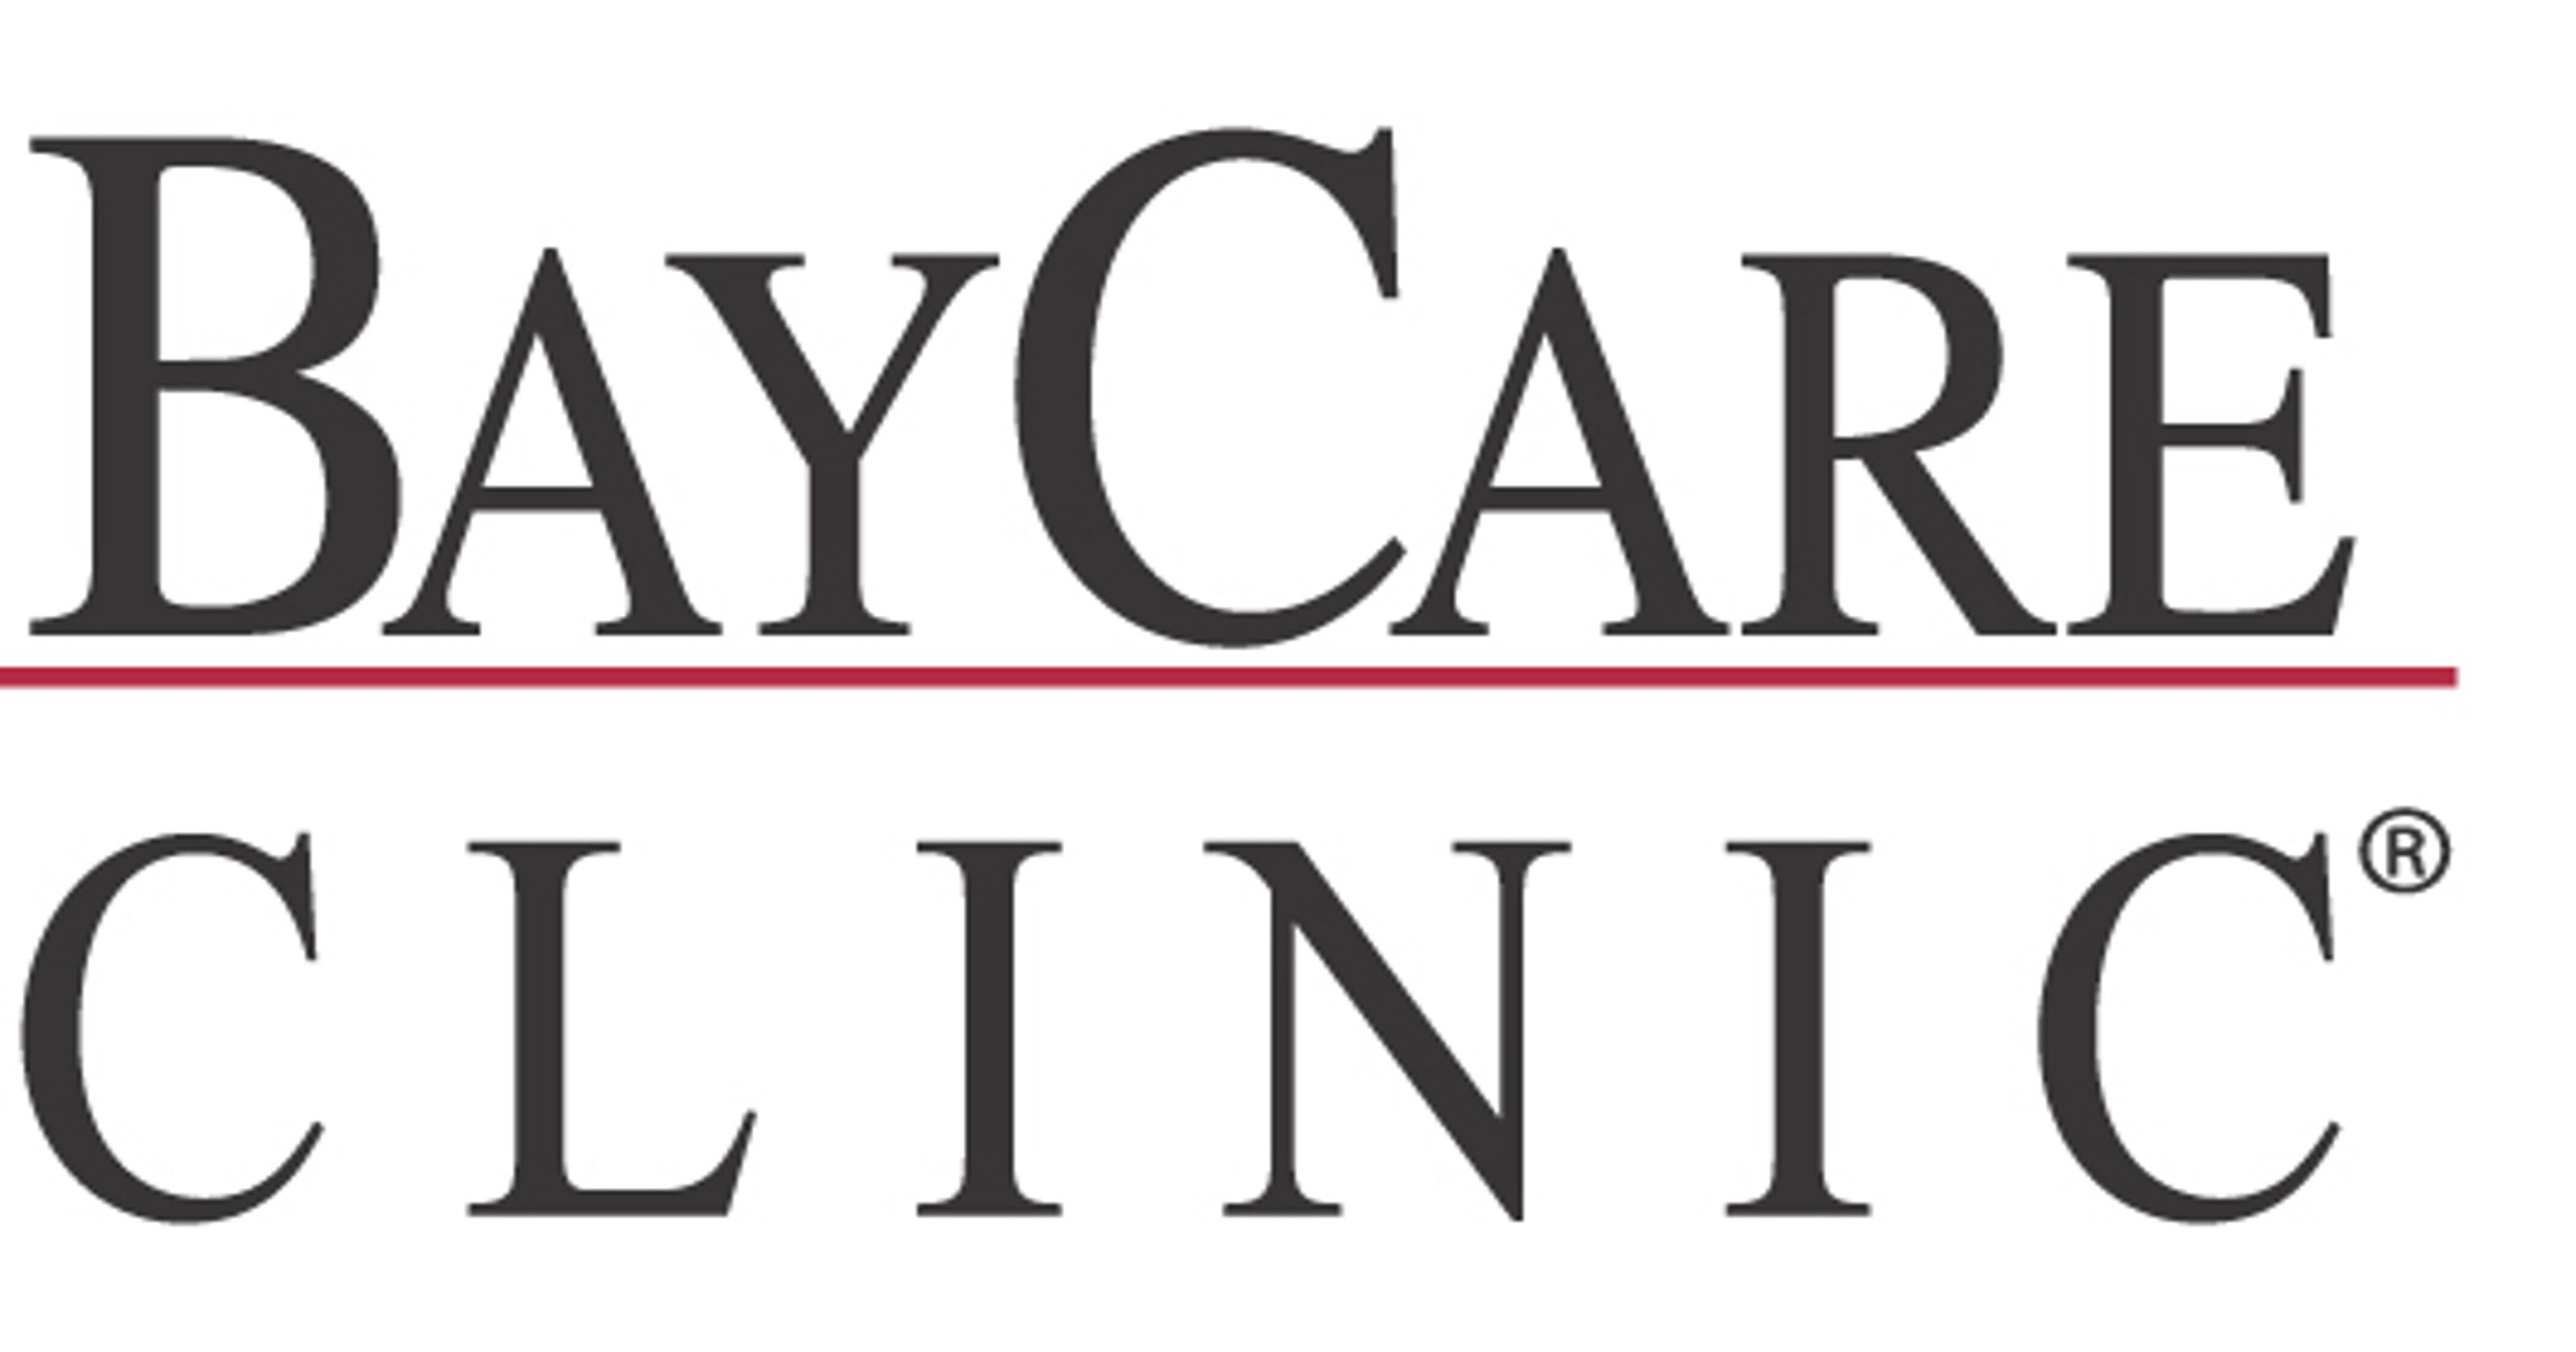 BayCare Foundation offers health care scholarships